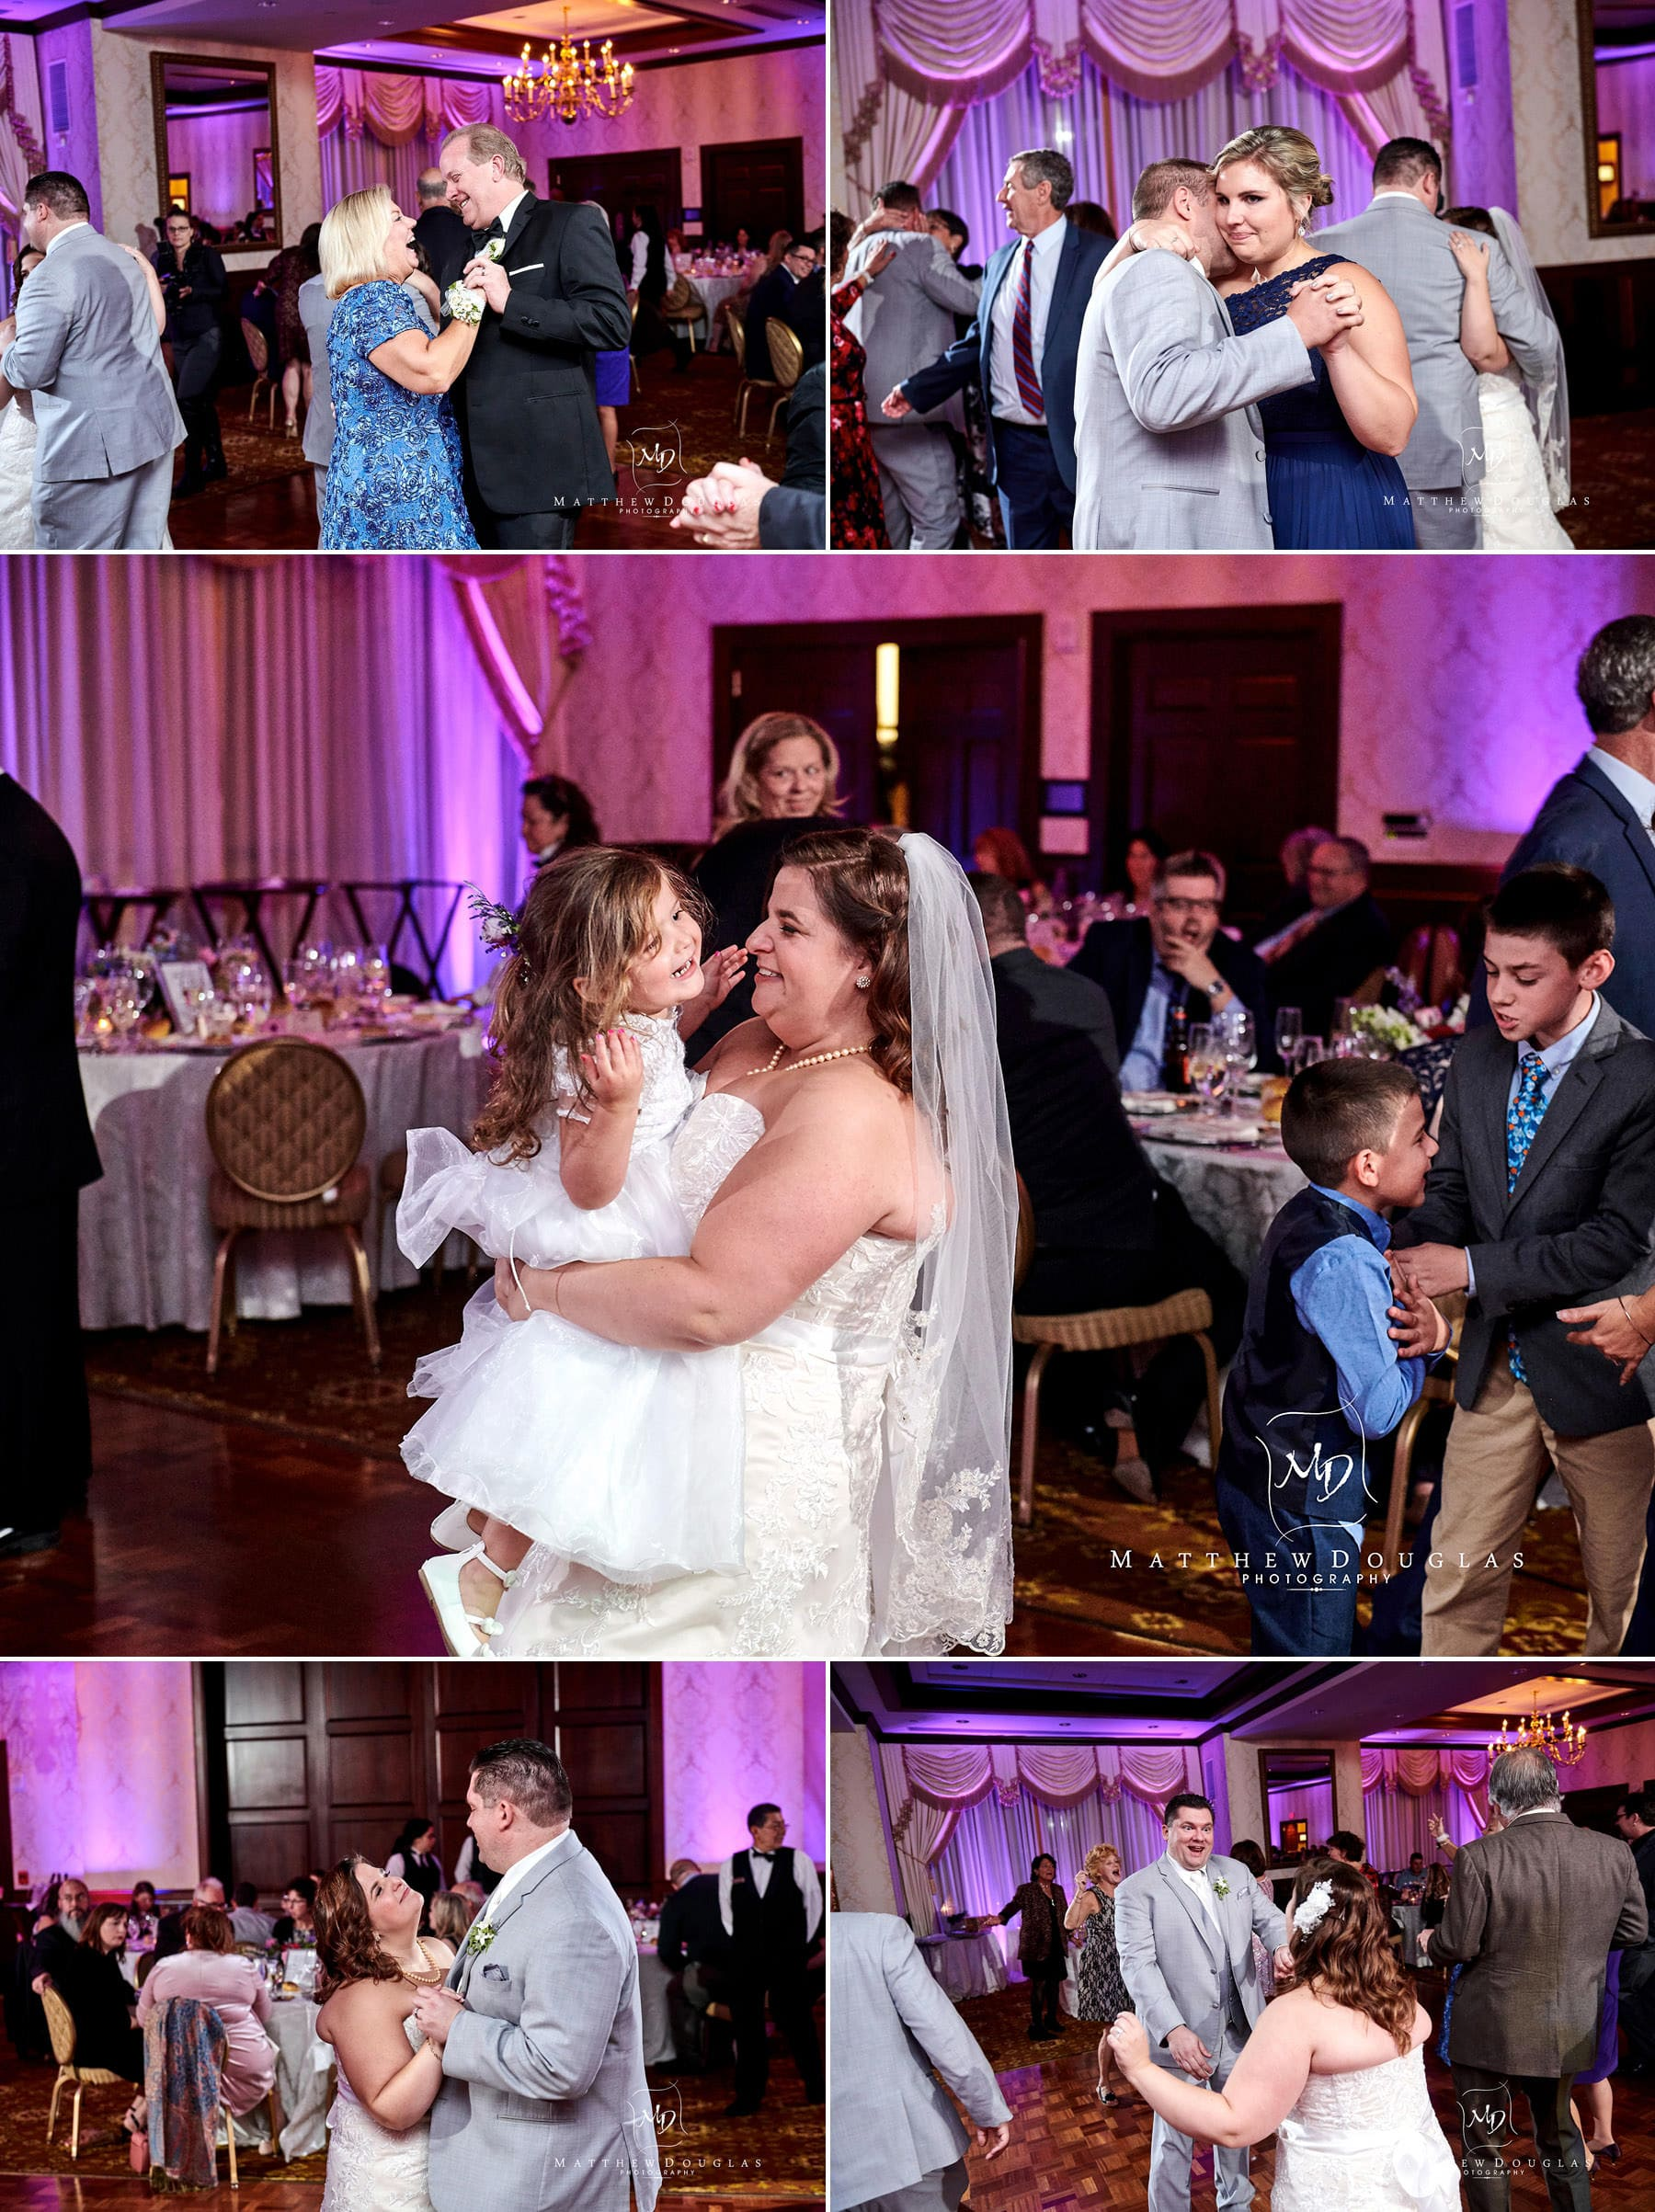 Nassau Inn wedding ballroom photos